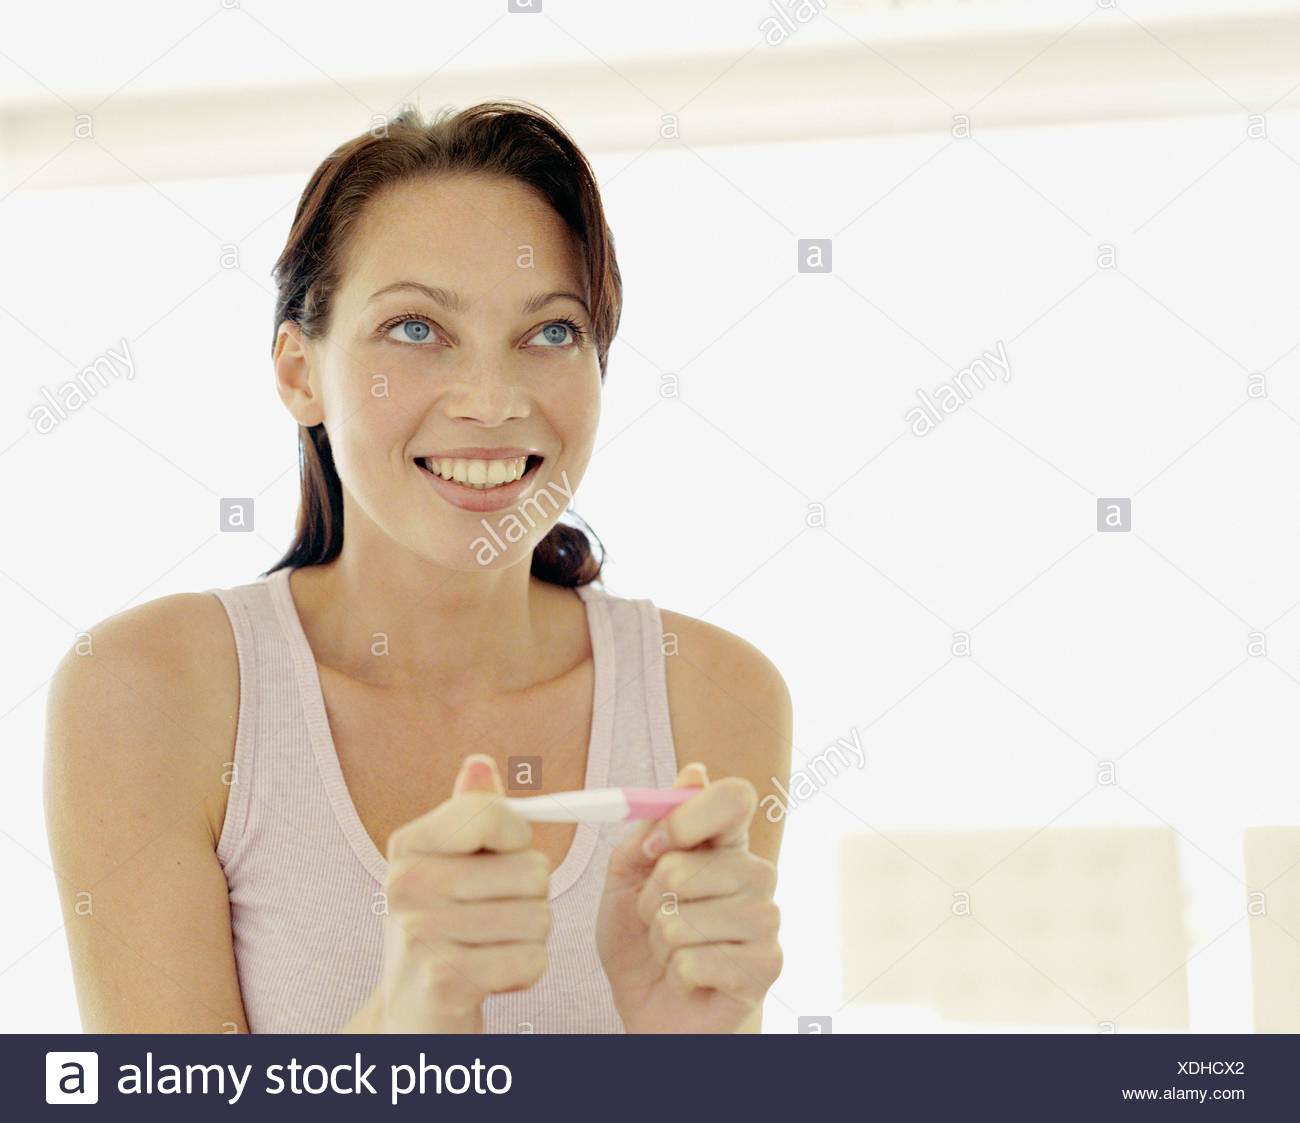 A woman looking at a pregnancy test - Stock Image